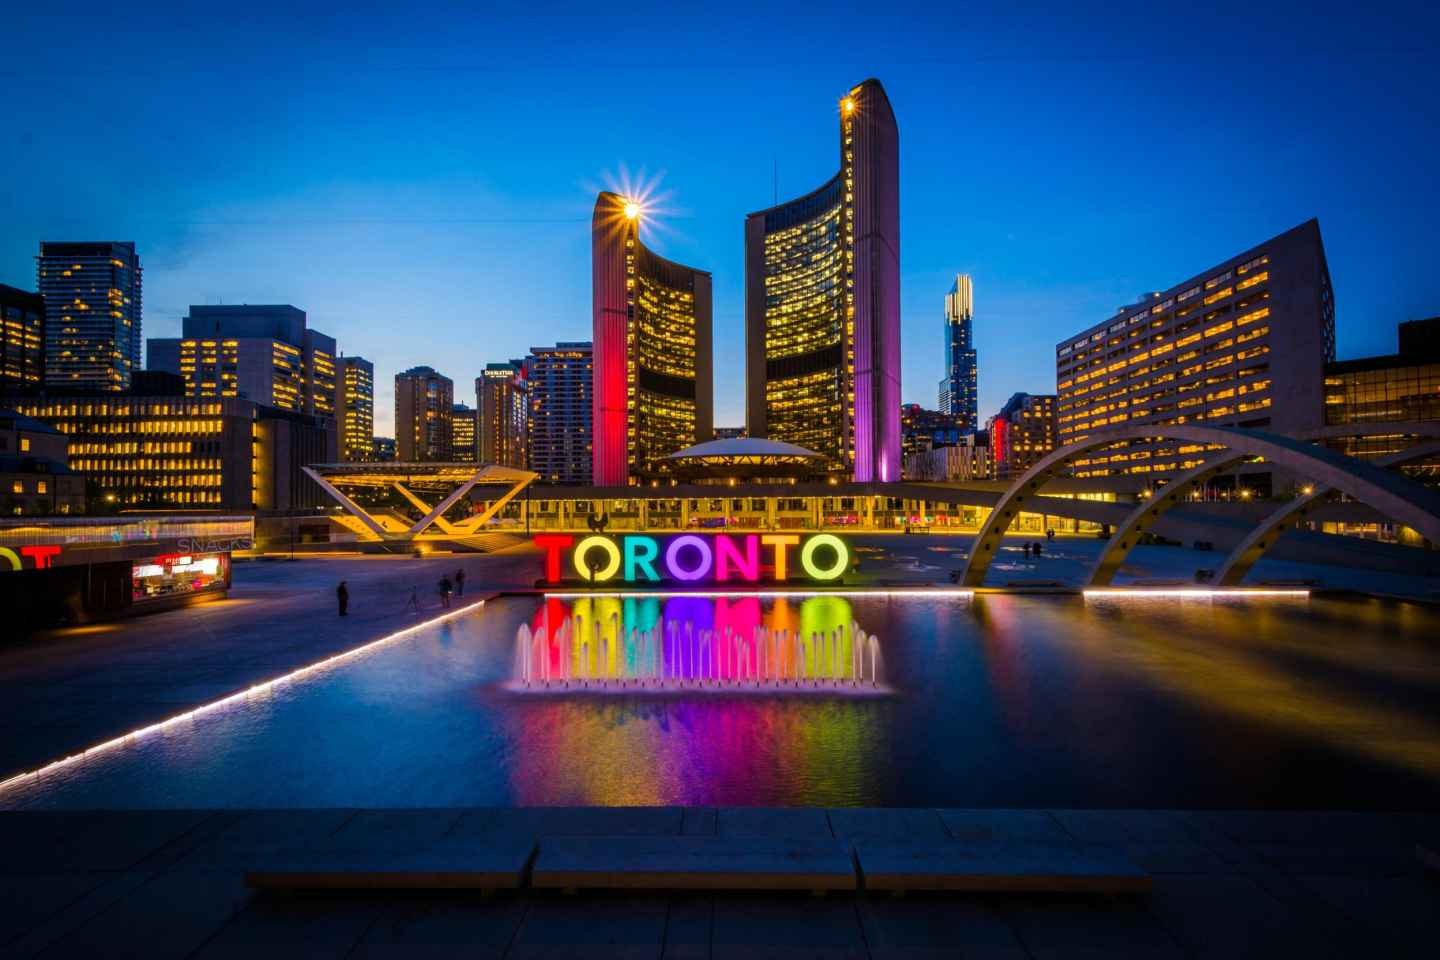 21 Best Places To Visit In Toronto, Canada - Updated 2020